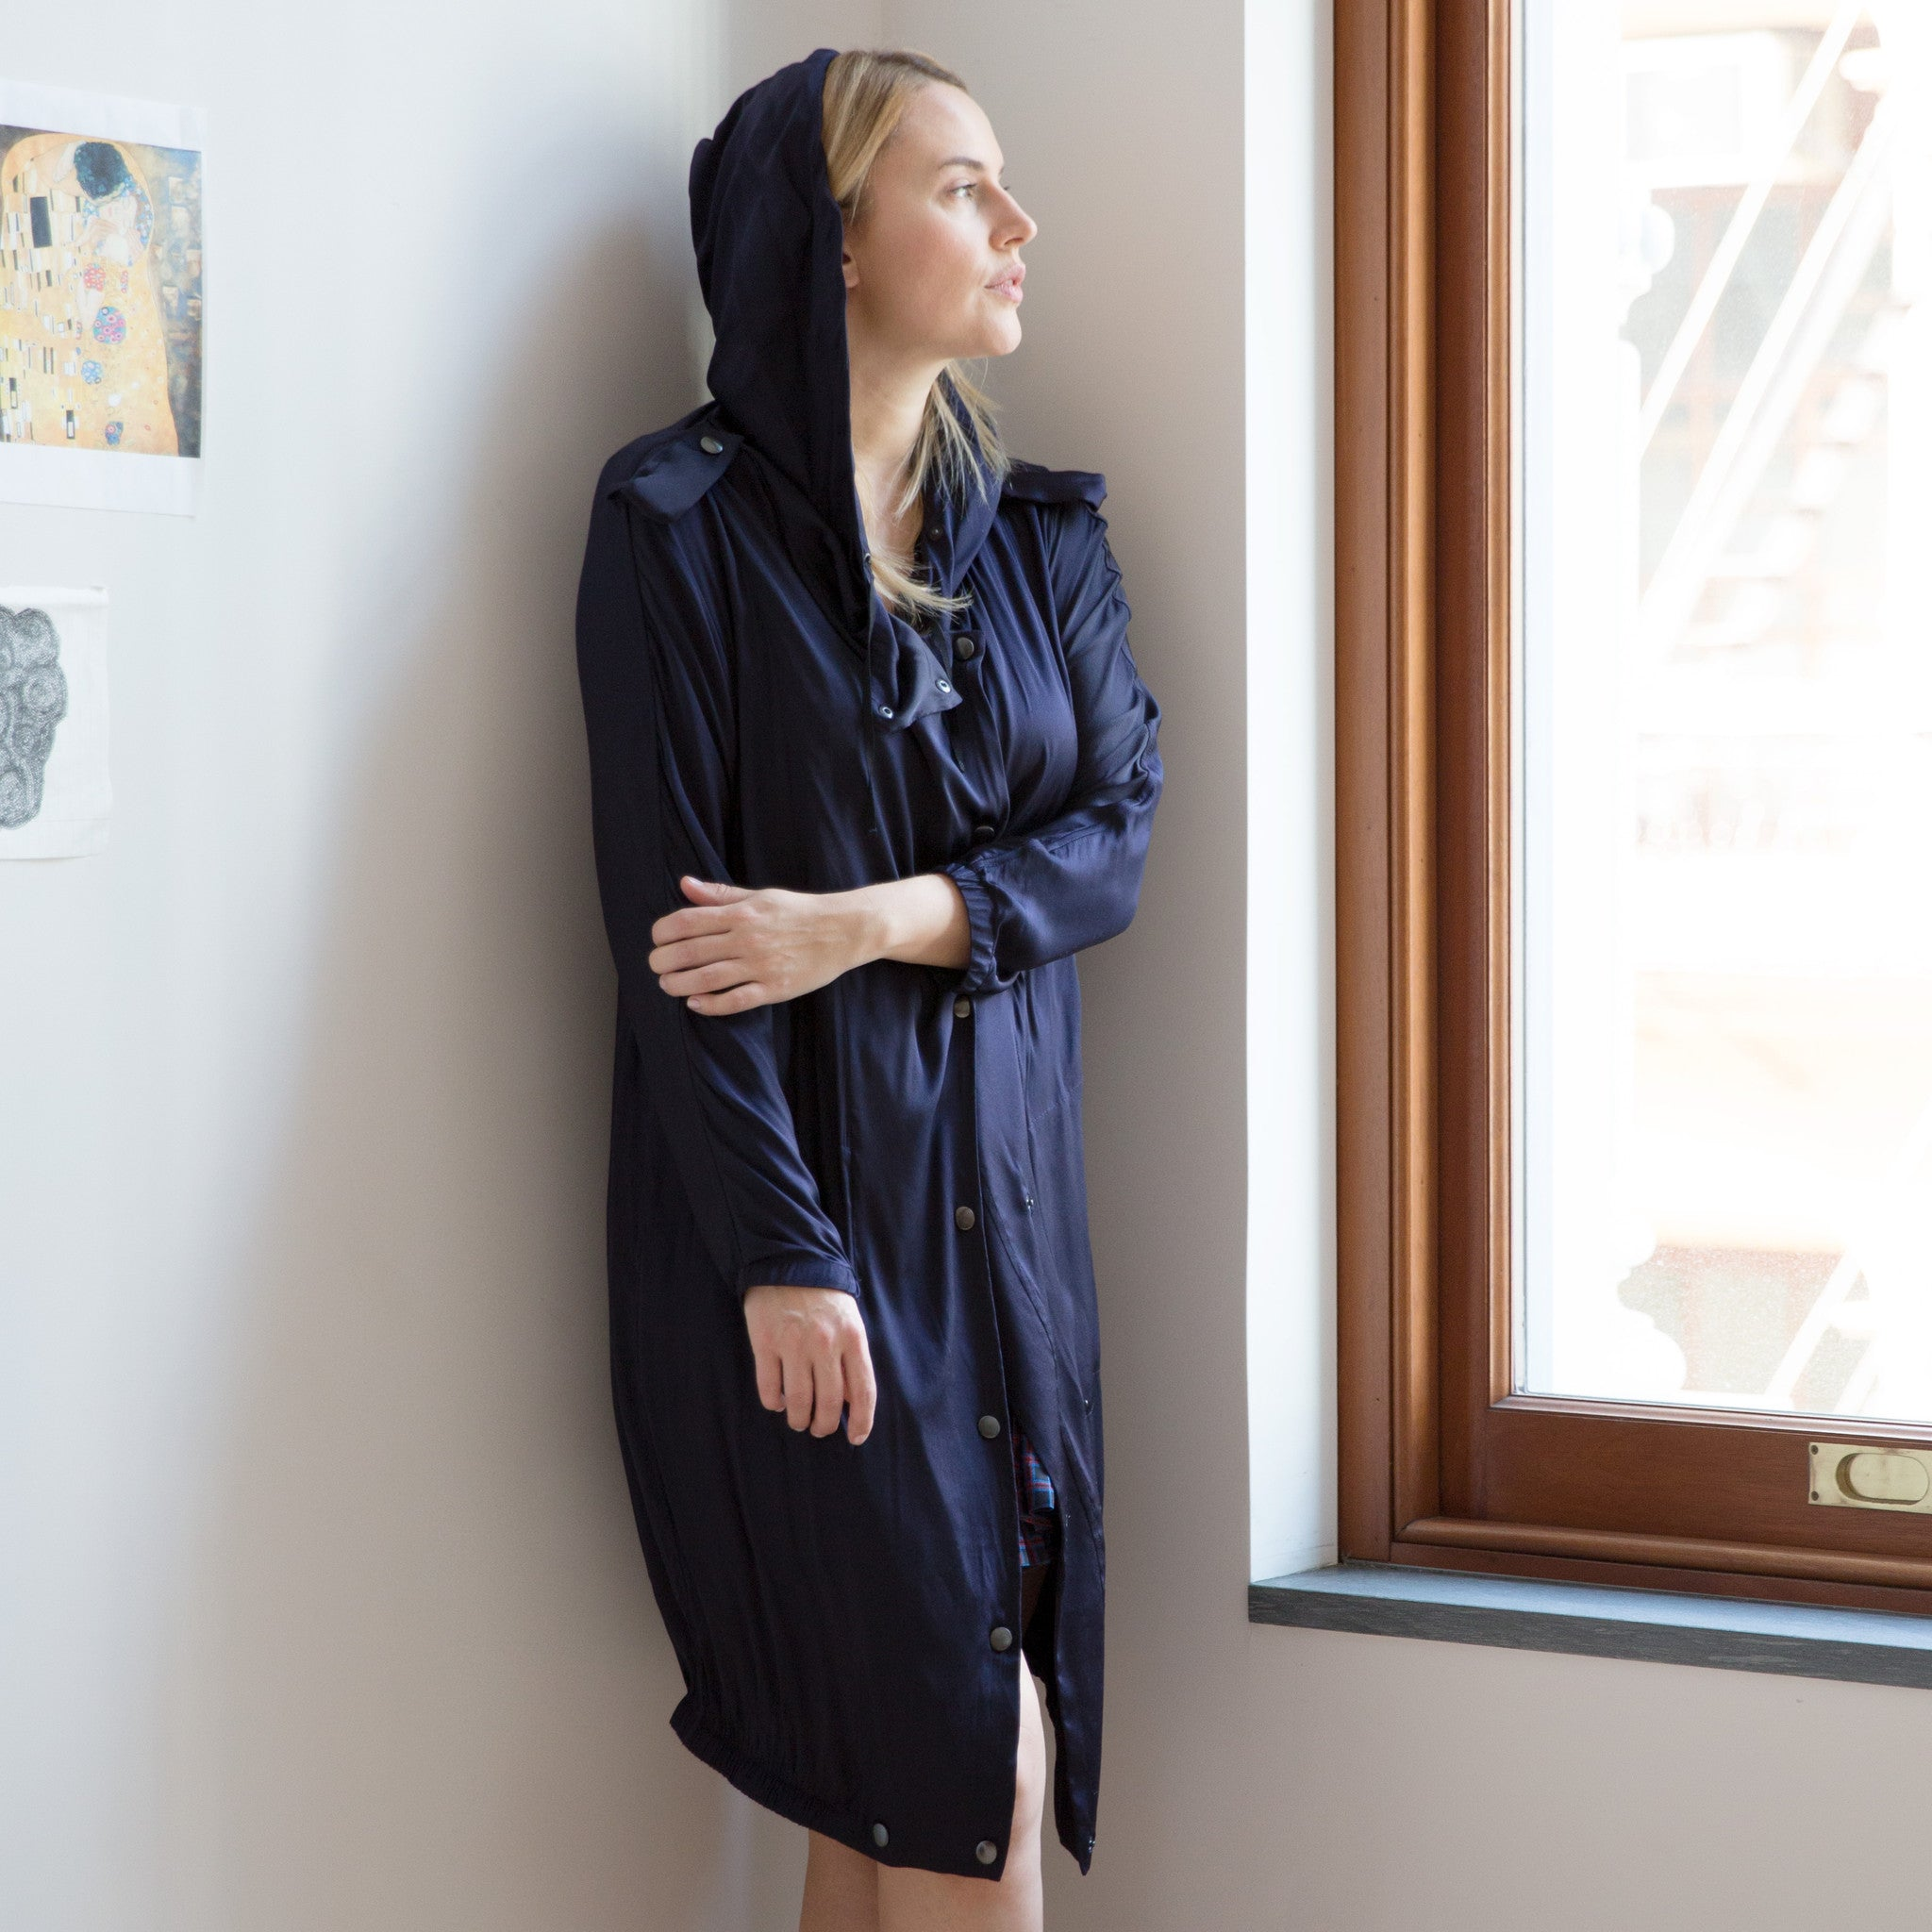 Find an authentic preowned Lanvin Midnight Blue Silk Hooded Parka, size 42 (French) at BunnyJack, where a portion of every sale goes to charity.